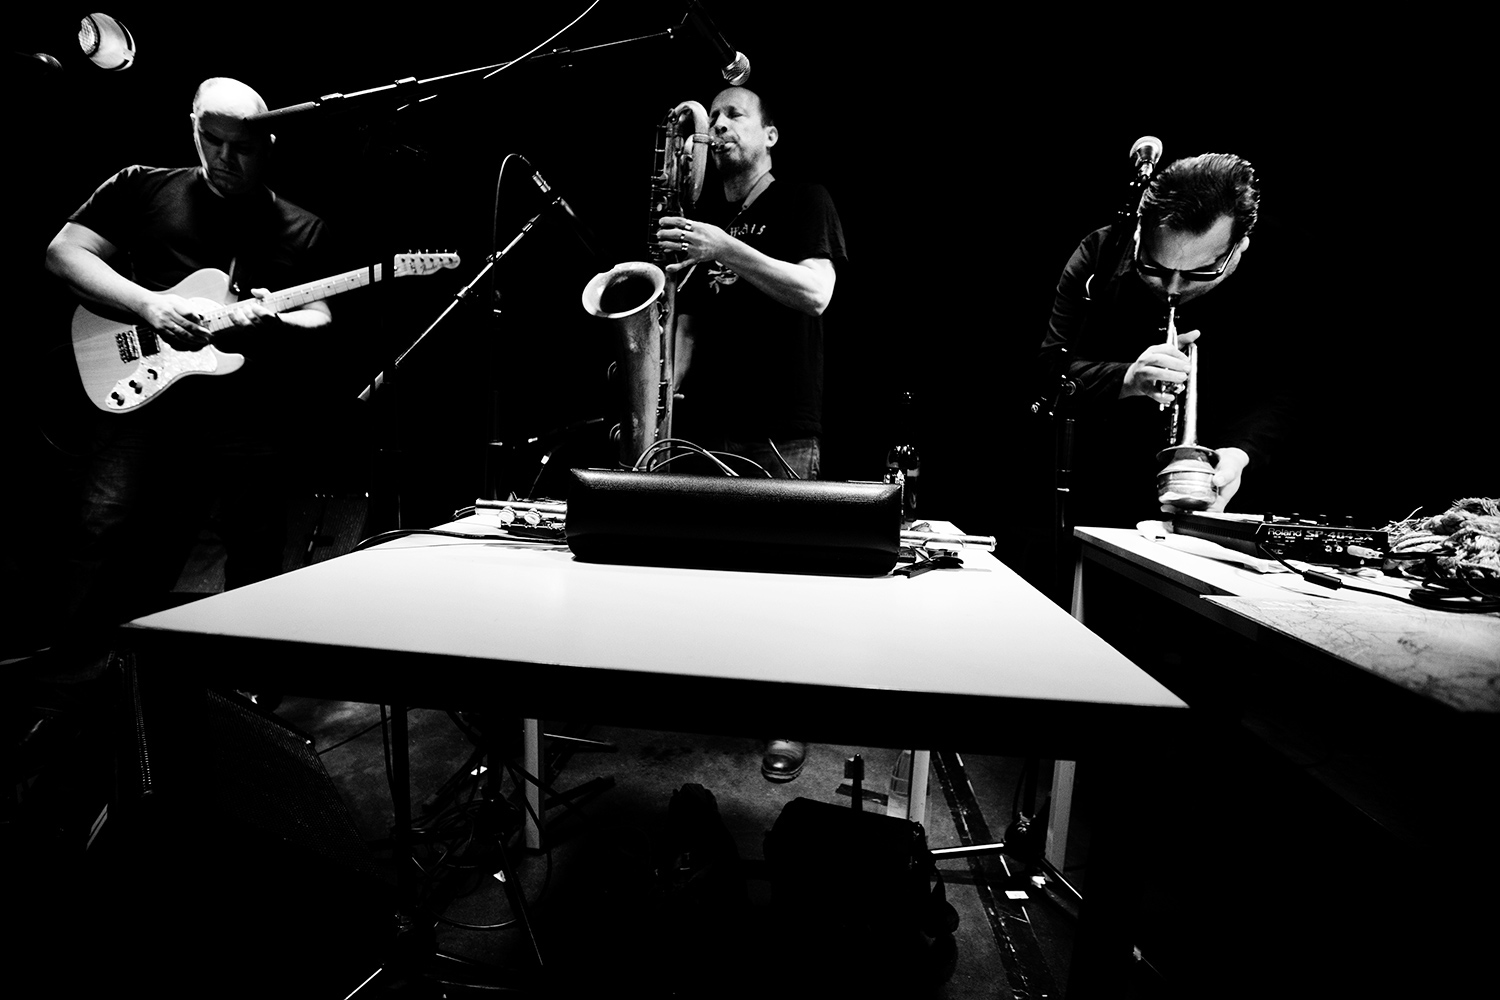 The Underflow (David Grubbs & Mats Gustavsson & Rob Mazurek) by Laurent Orseau - Oorstof | Sound In Motion - Les Ateliers Claus - Brussels, Belgium #1